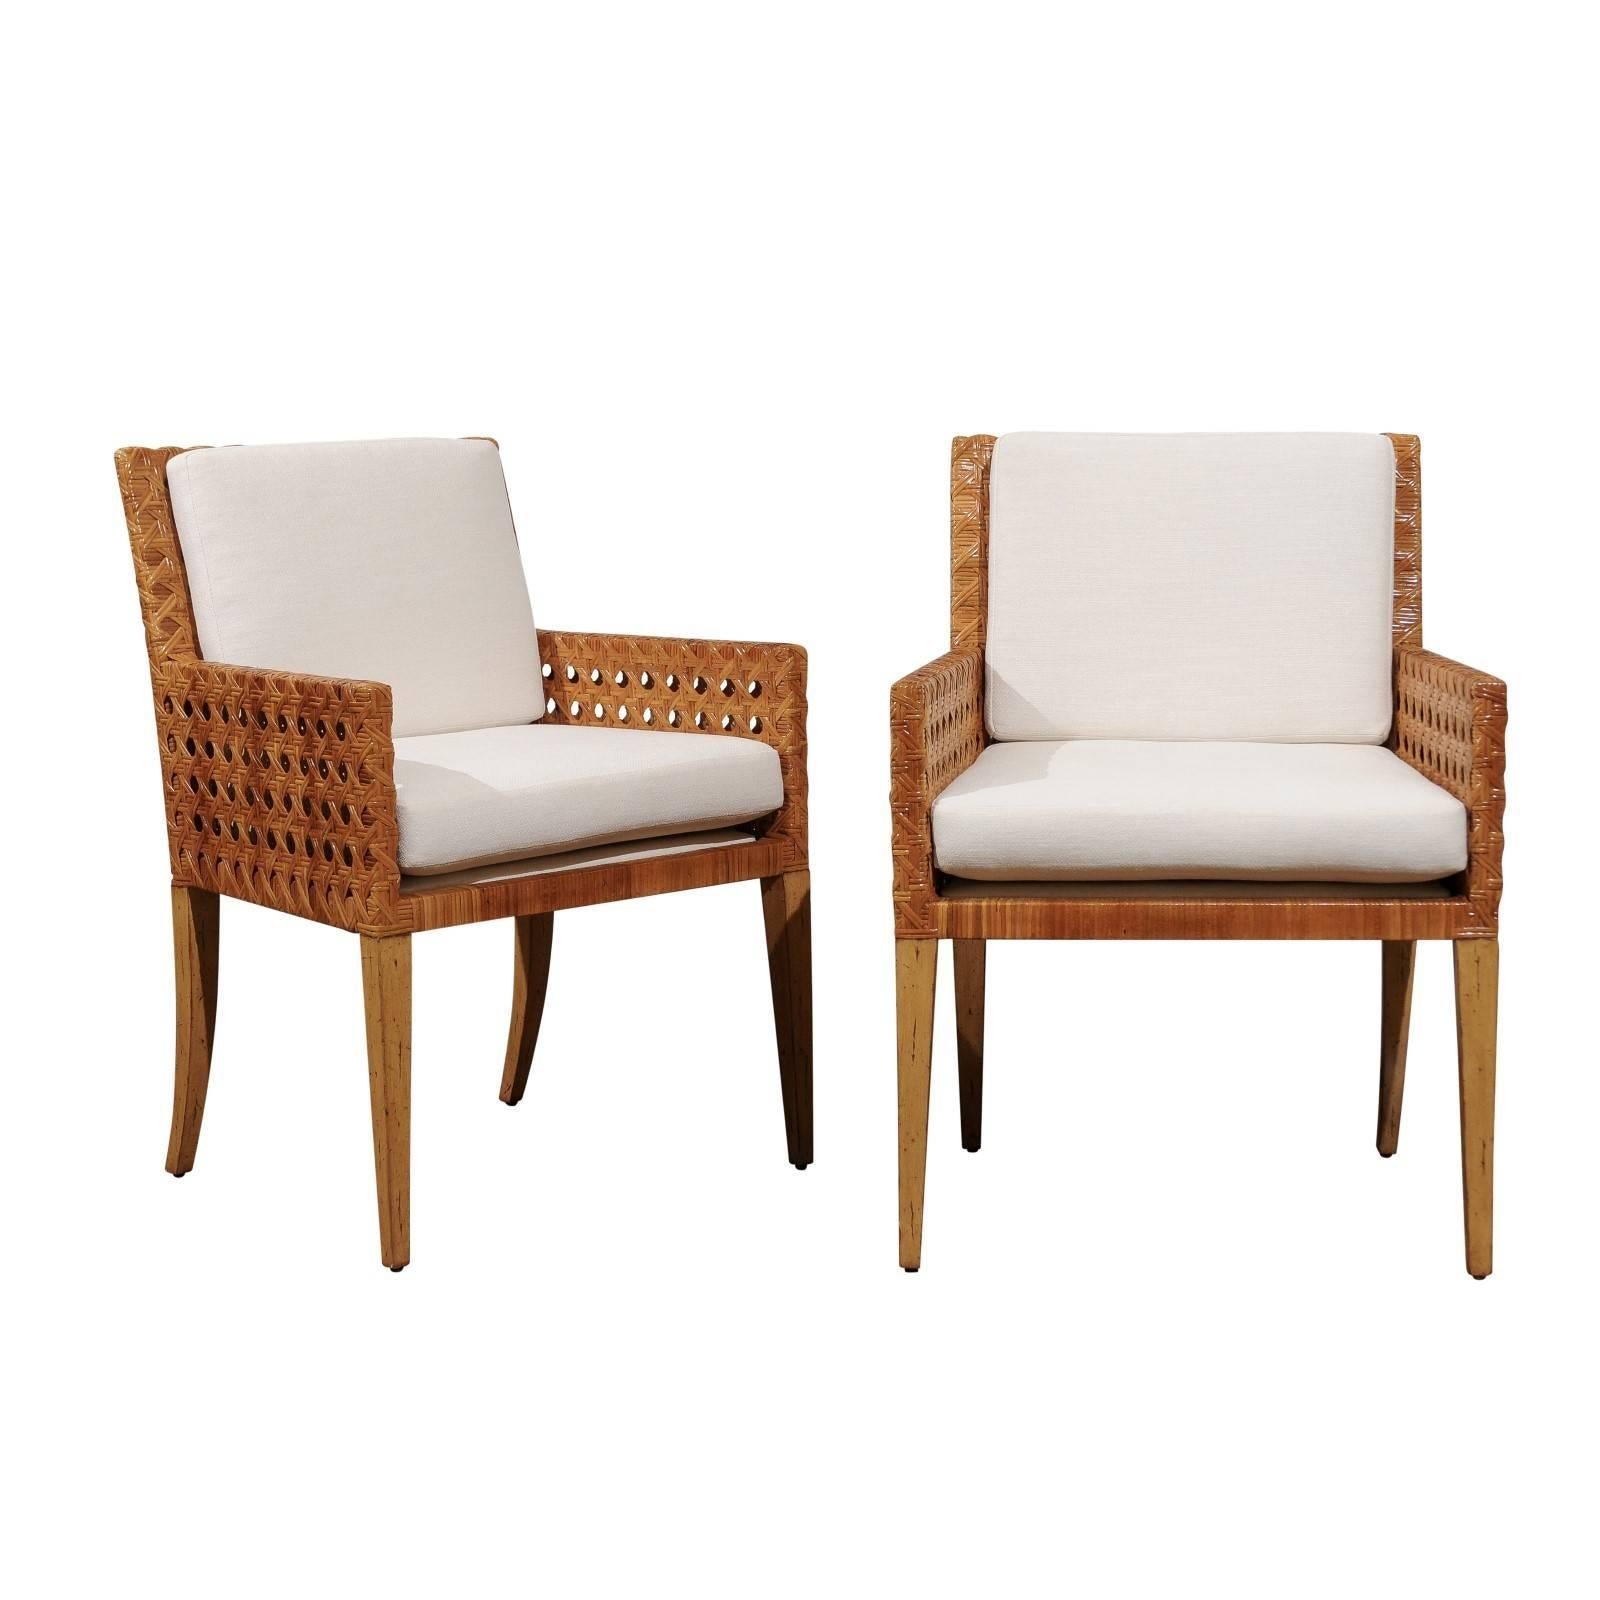 Stunning Restored Pair of Large-Scale Vintage Cane Armchairs, circa 1975